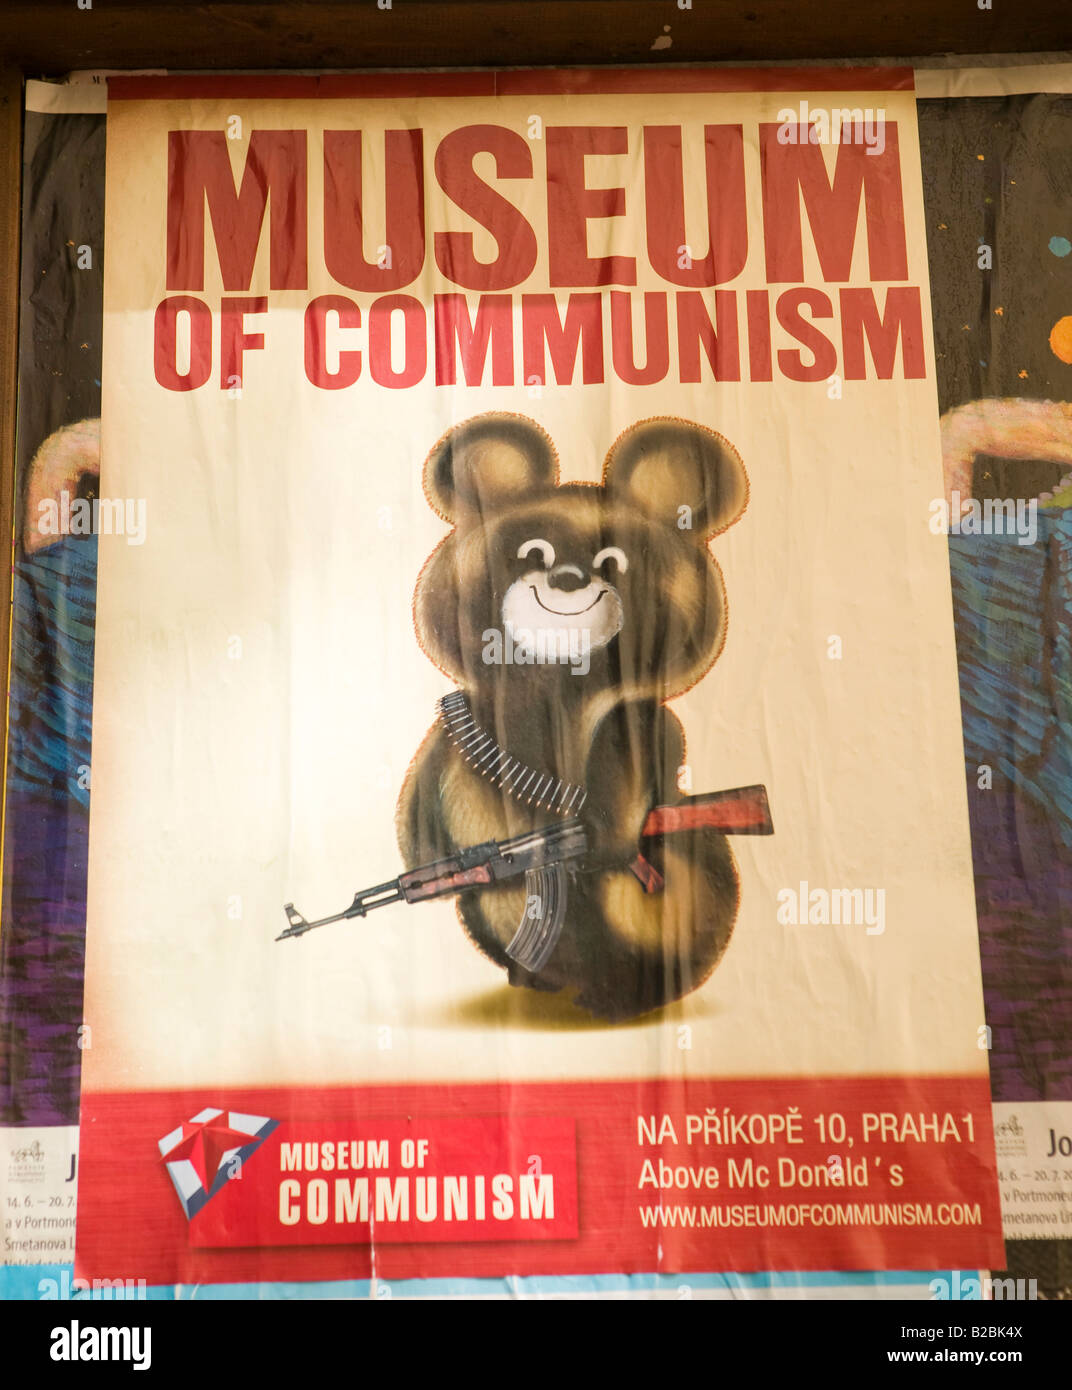 politic, museum, comunism, poster, ilustration - Stock Image